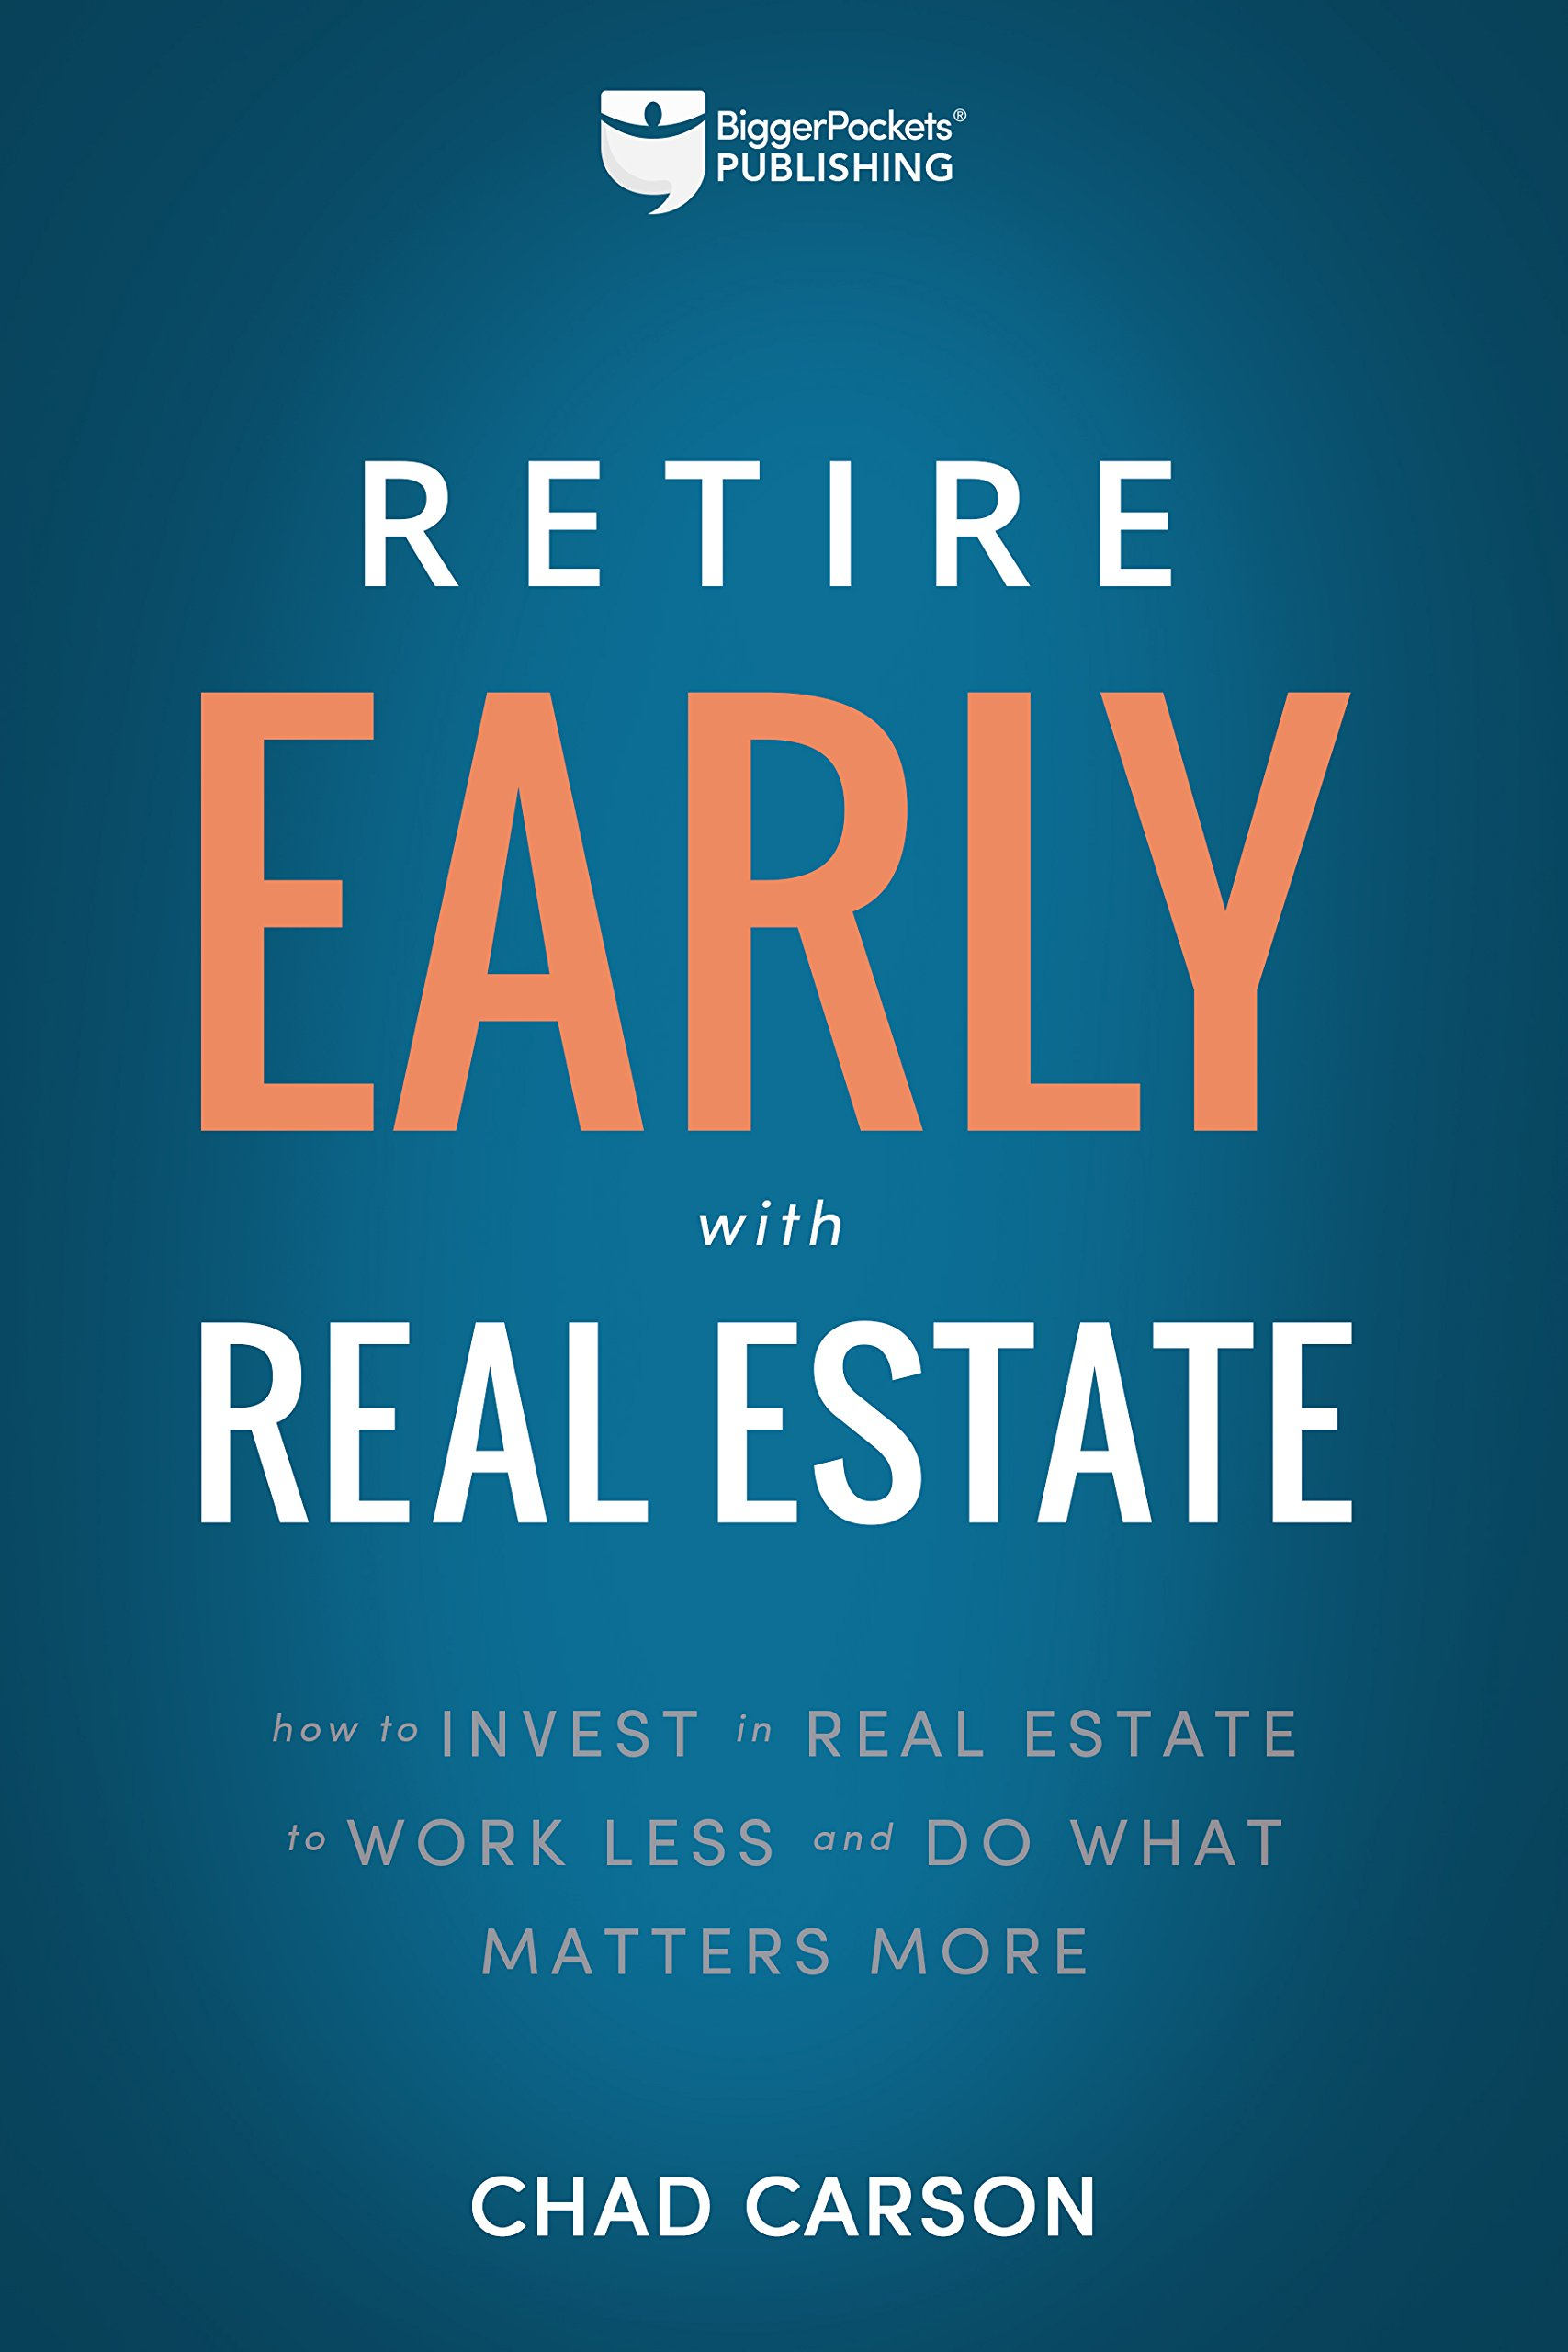 Retire Early With Real Estate: How Smart Investing Can Help You Escape the  9-5 Grind and Do More of What Matters: Chad Carson: 9781947200036:  Amazon.com: ...